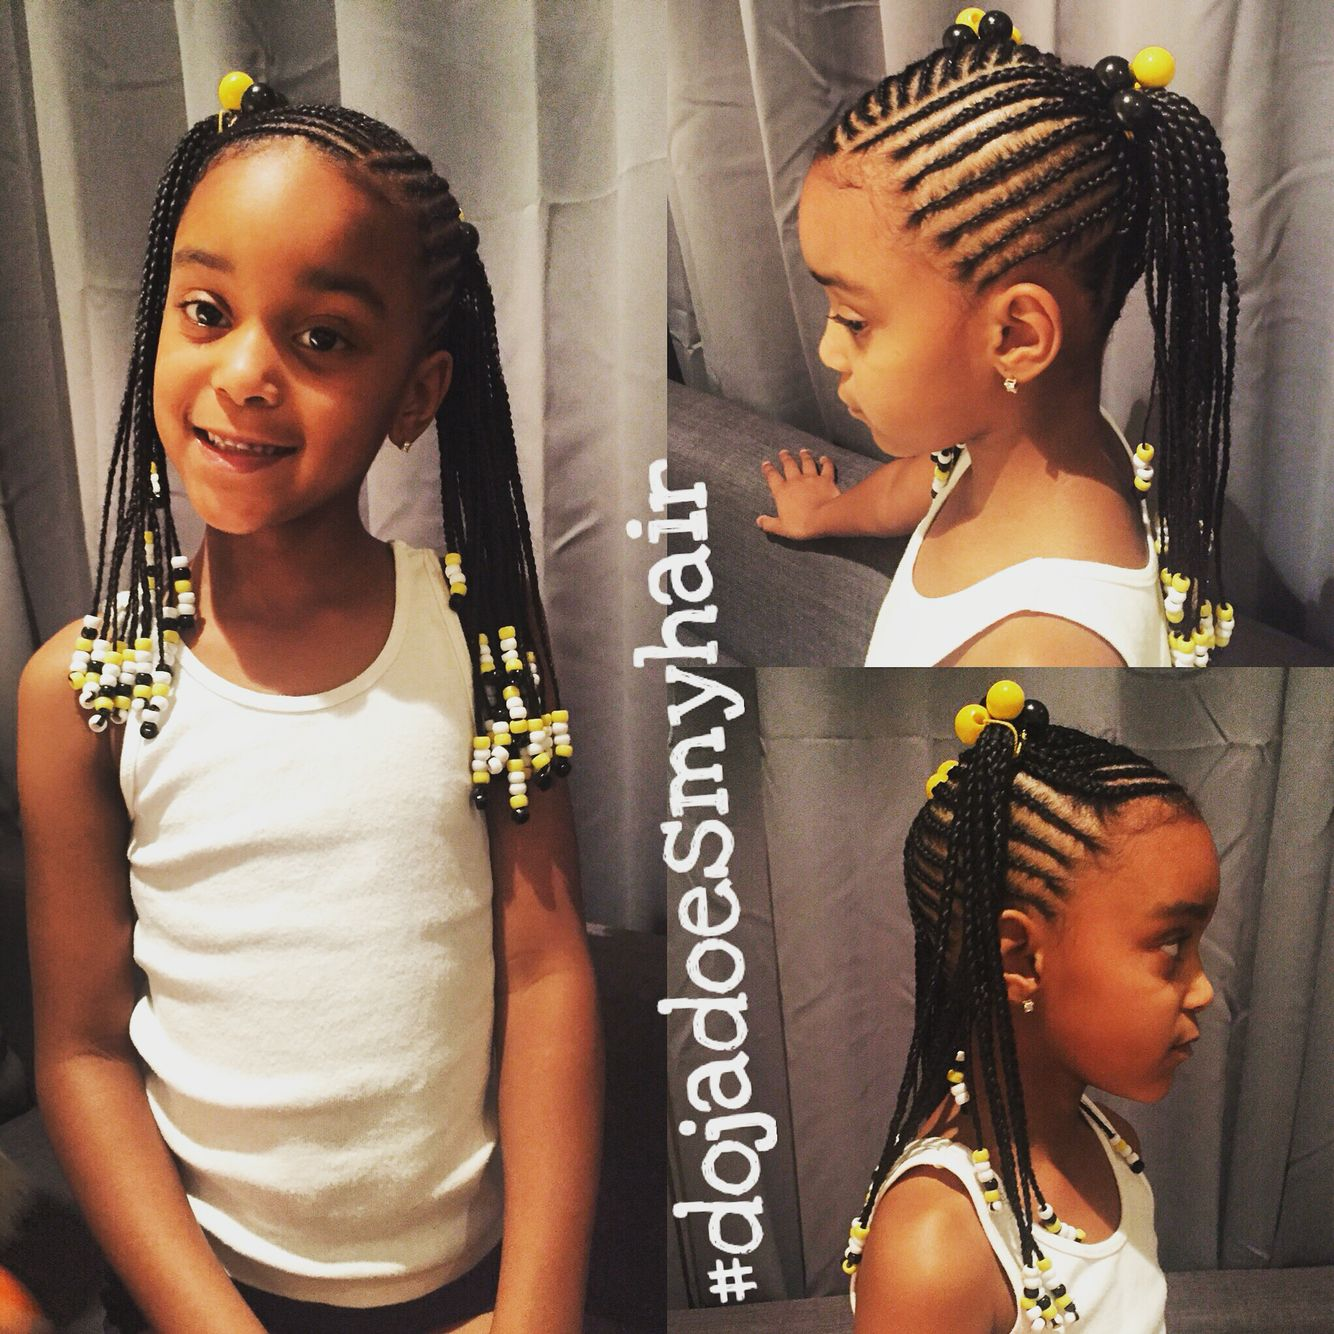 Kids Protective Braid Style For Long And Curly Hair Two Ponytails Braided To The Ends With Black And Ye Braids For Short Hair Cornrow Hairstyles Girls Braids